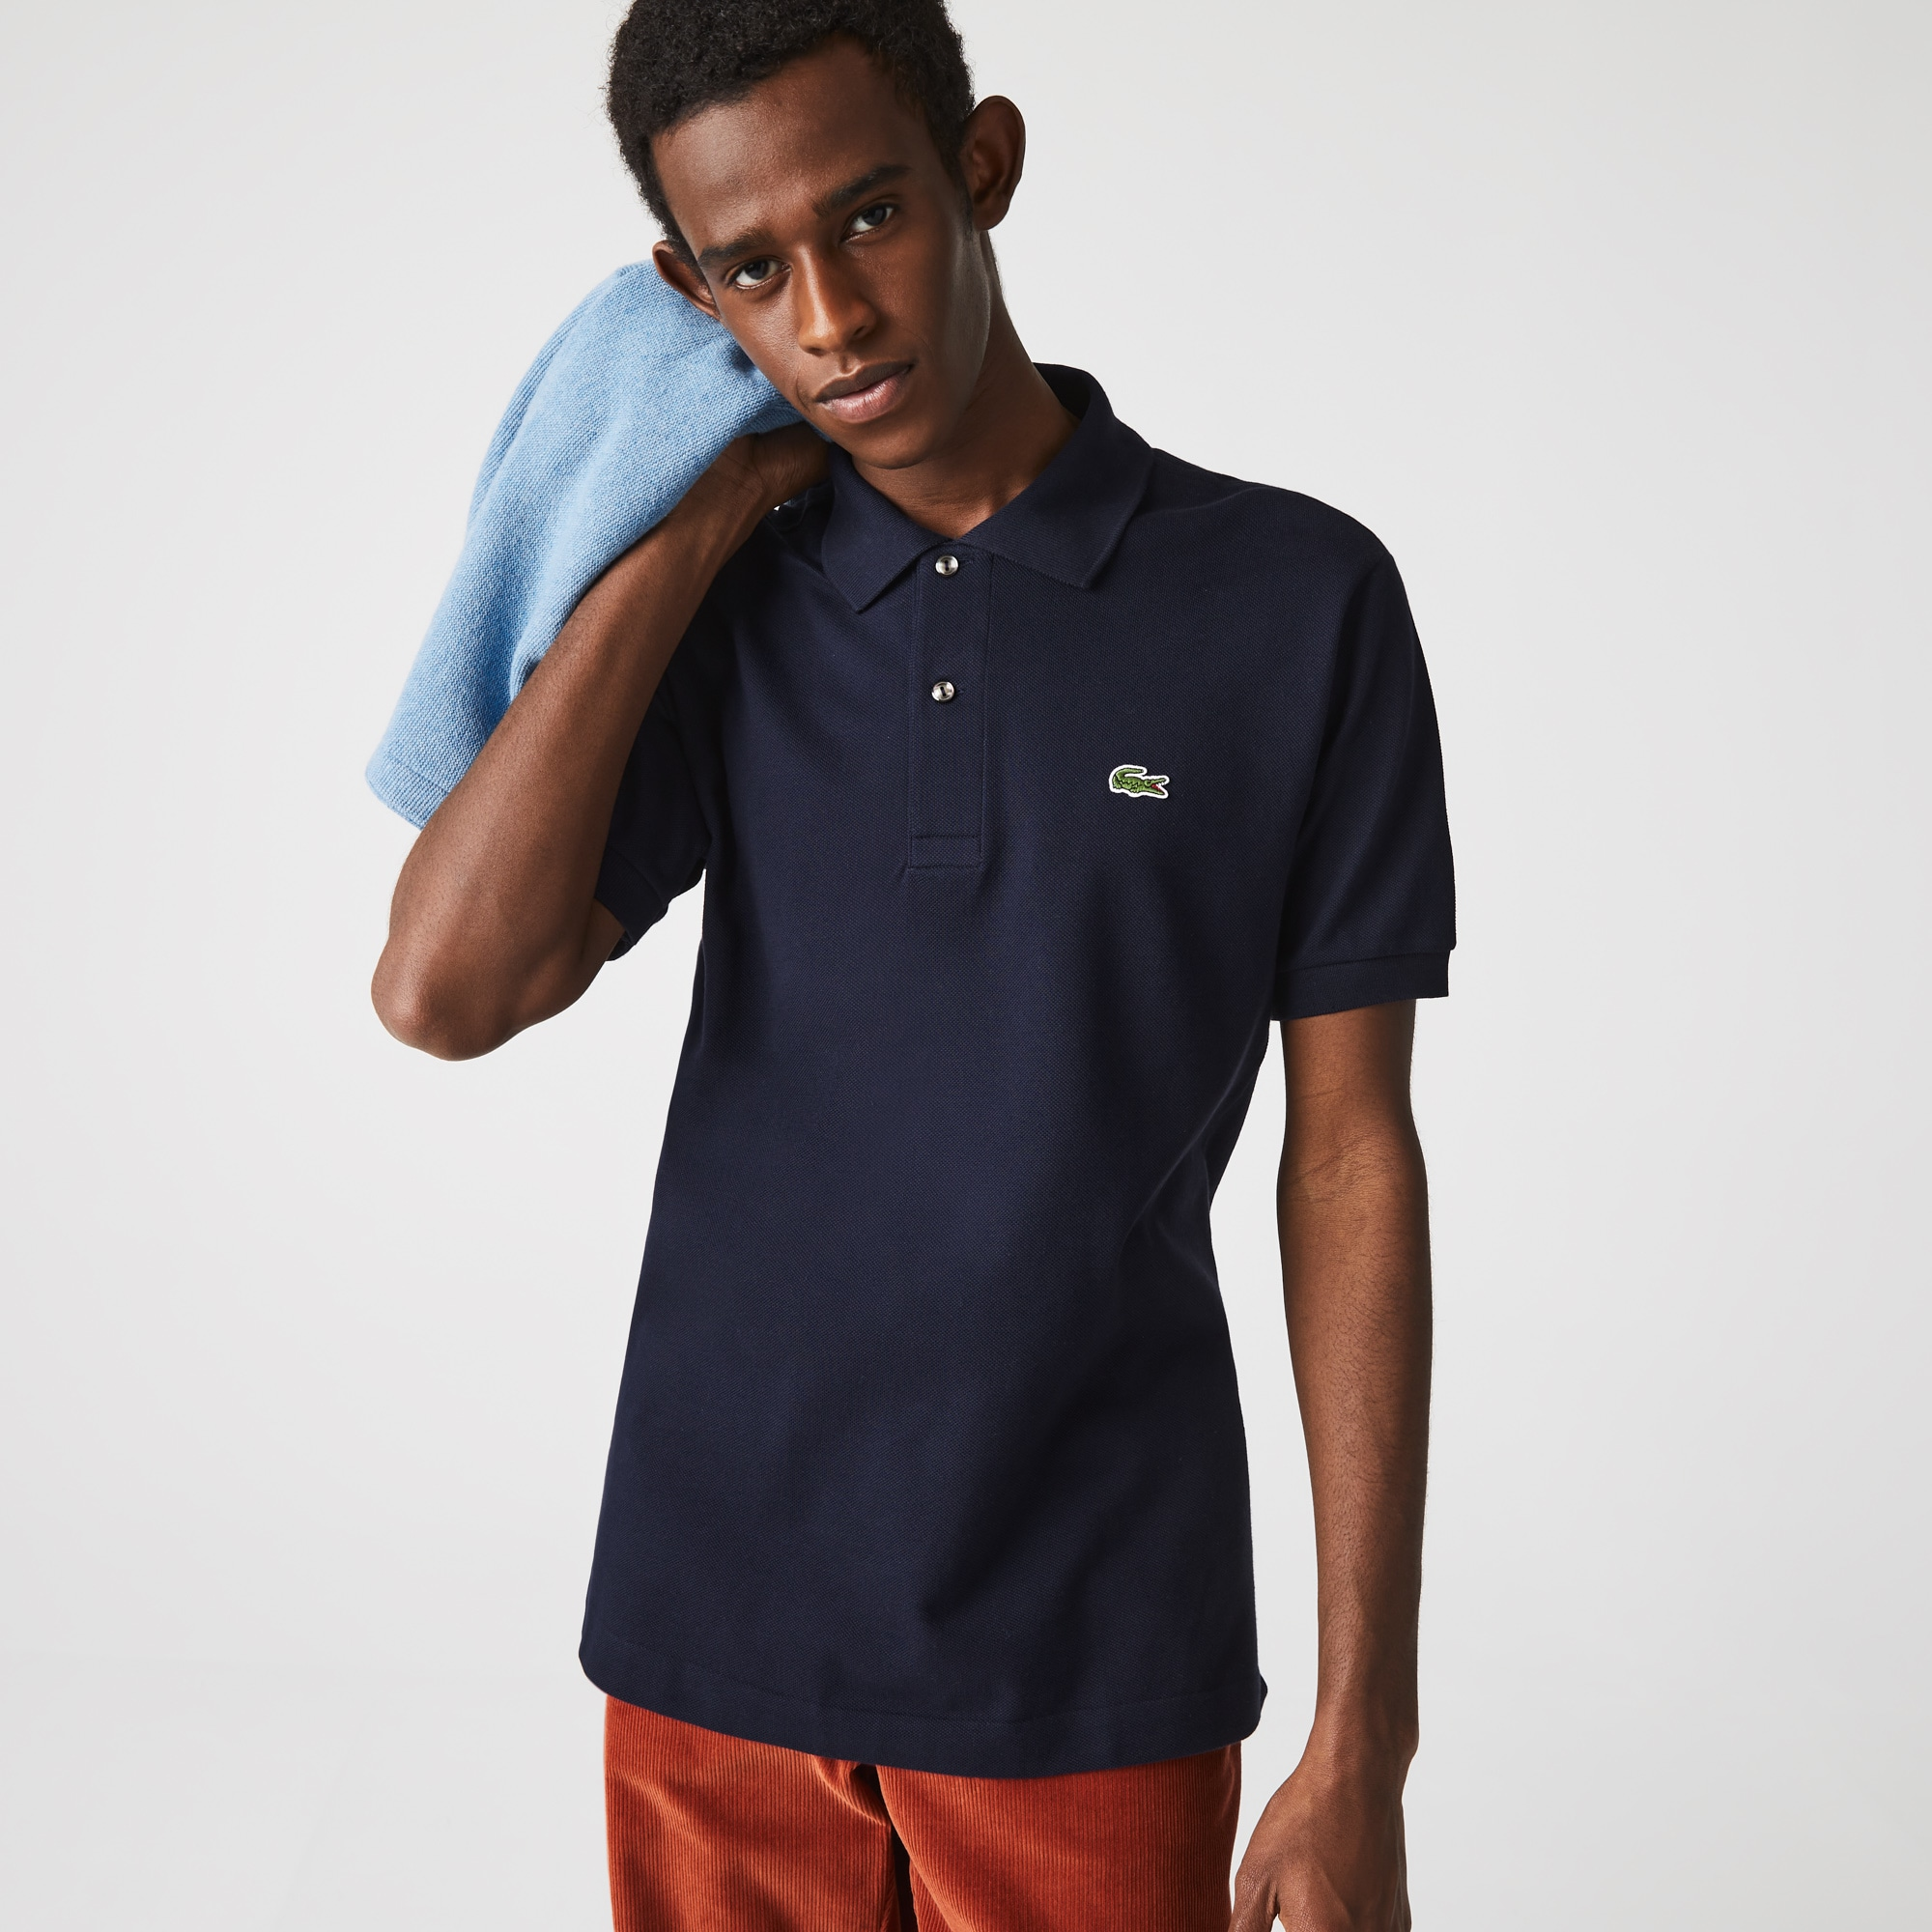 Lacoste polo lacoste for Lacoste big and tall polo shirts